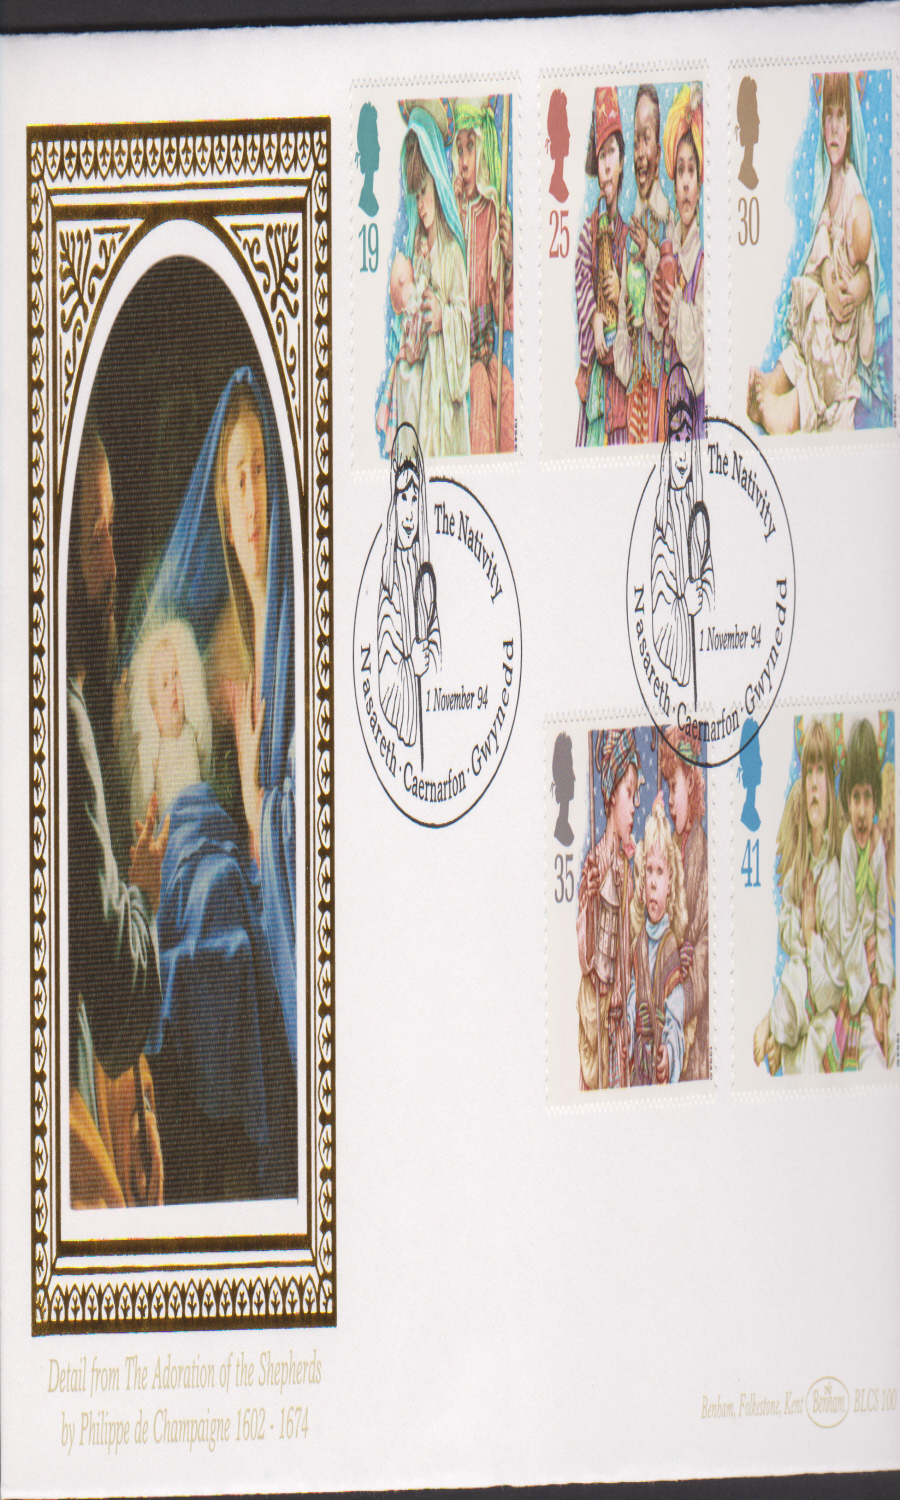 1994 - Benham Christmas First Day Cover - Nasareth Postmark